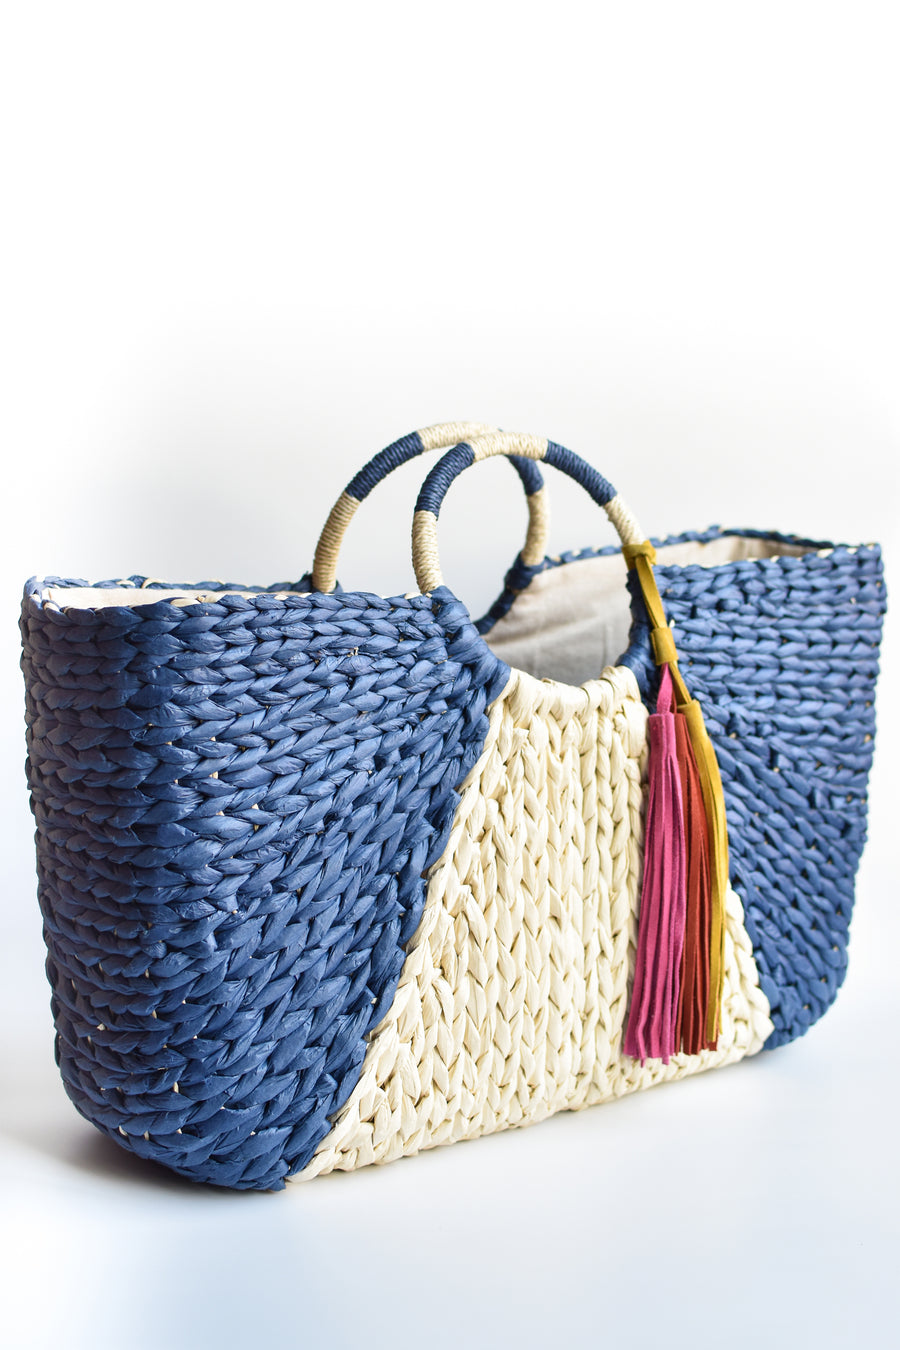 Navy and natural colored over-sized straw tote with circle handle and suede tassels.